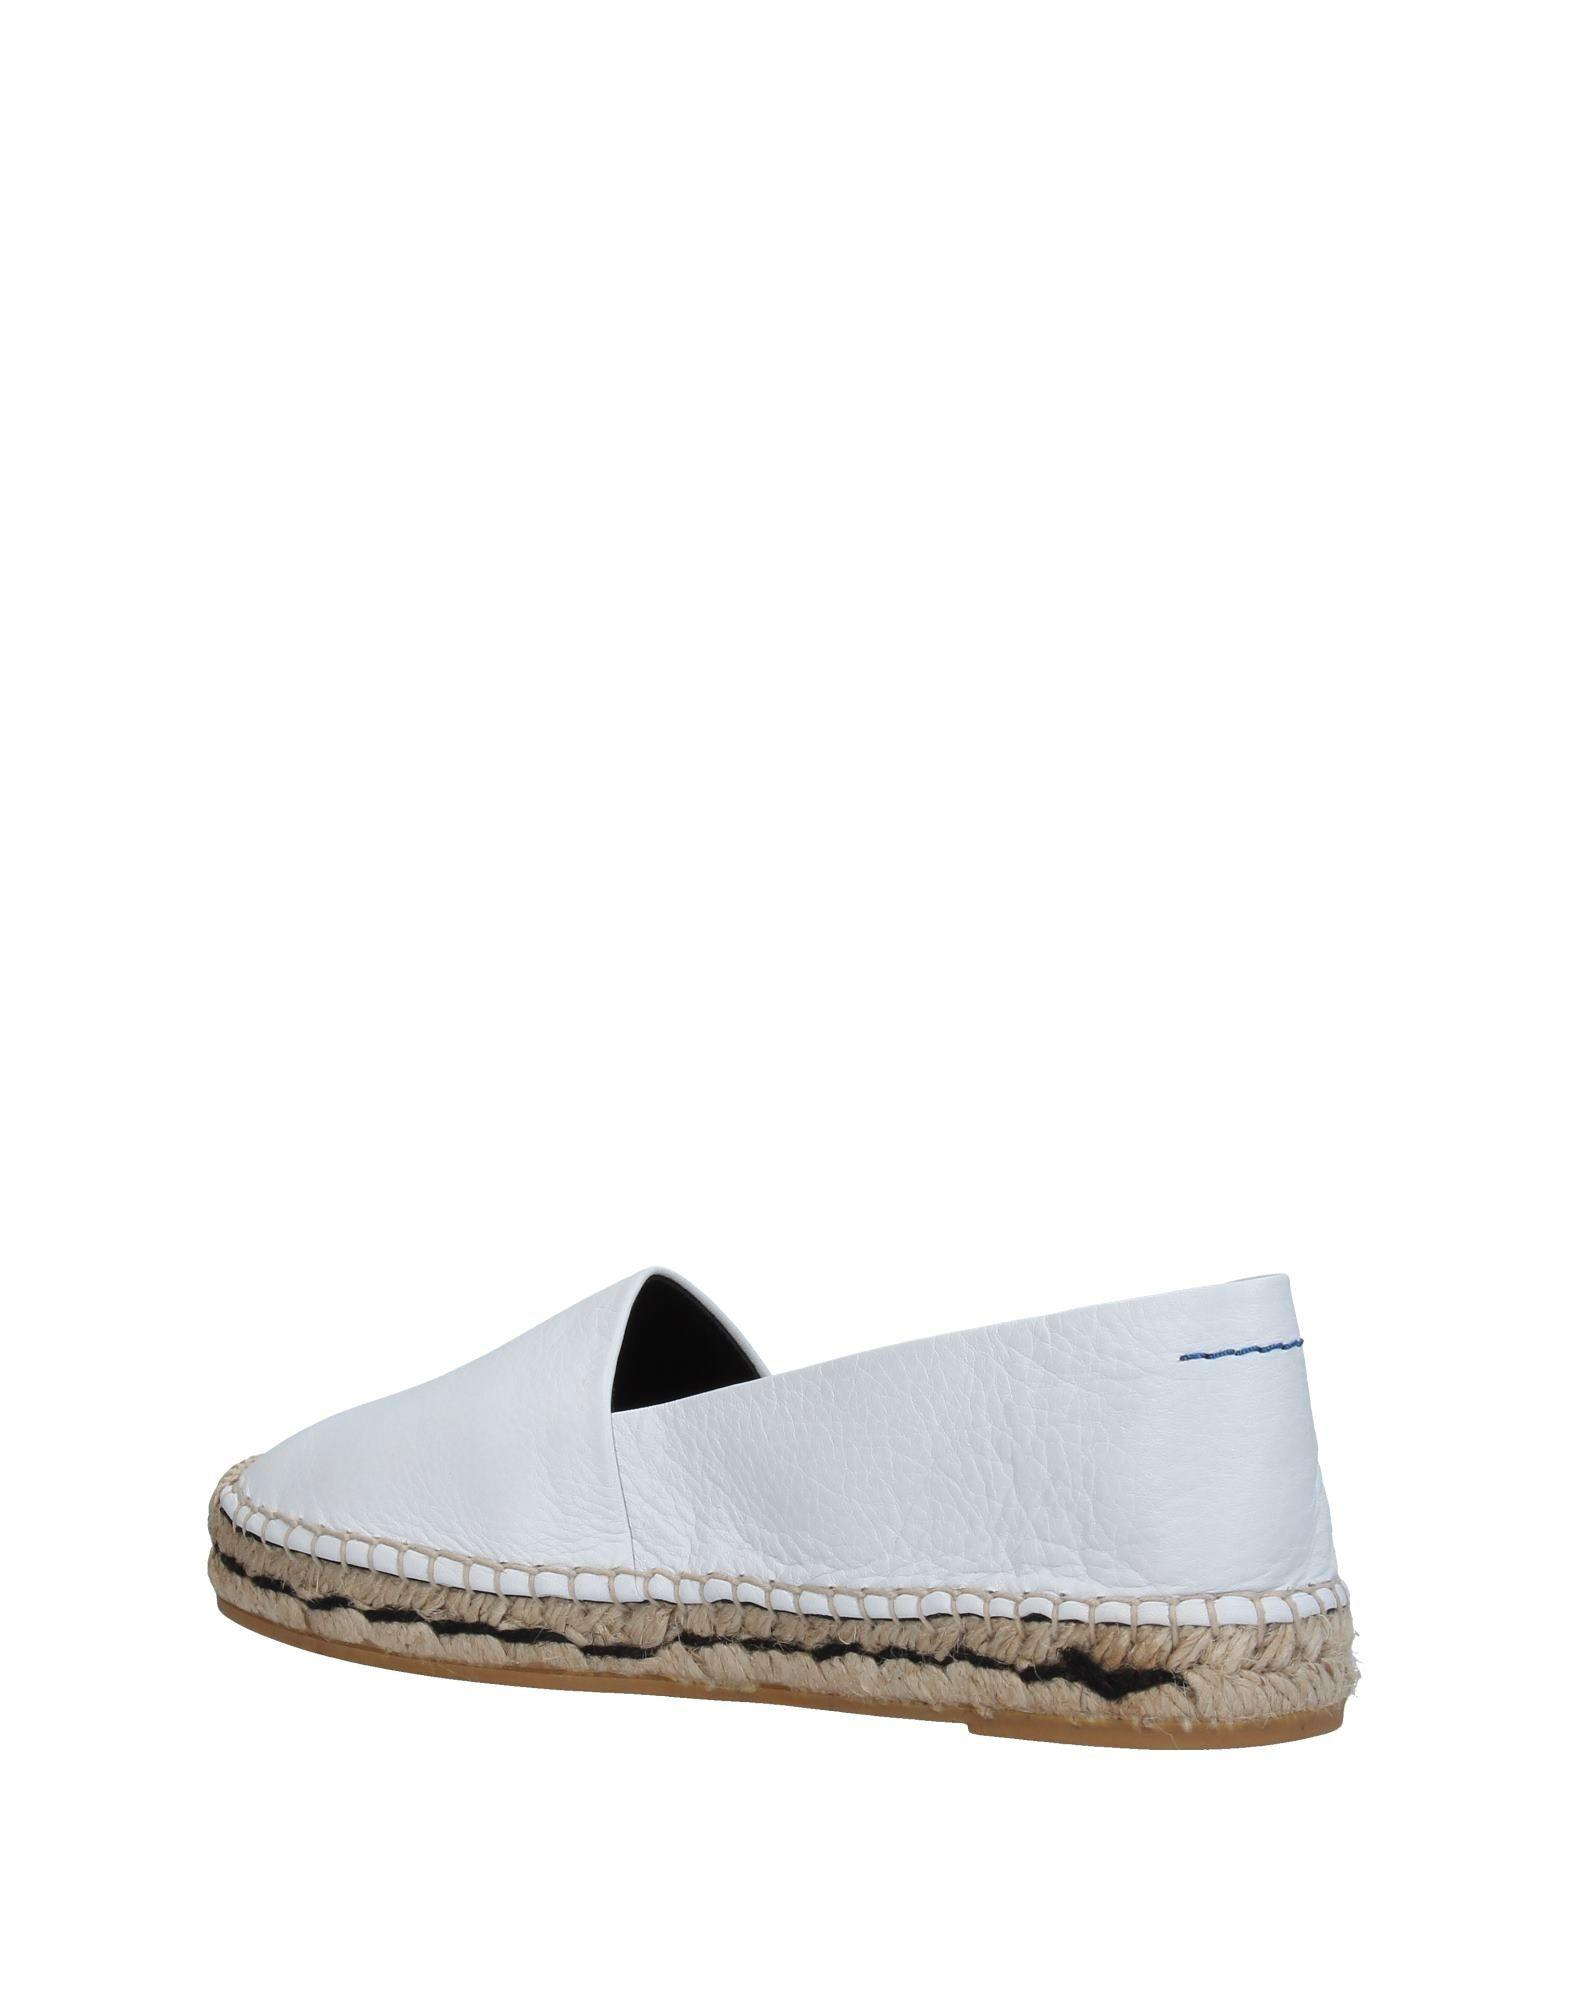 Buy Authentic Online Manchester Great Sale Sale Online FOOTWEAR - Espadrilles Philippe Model Free Shipping Clearance Store Cheap Wholesale Price Comfortable APa5N